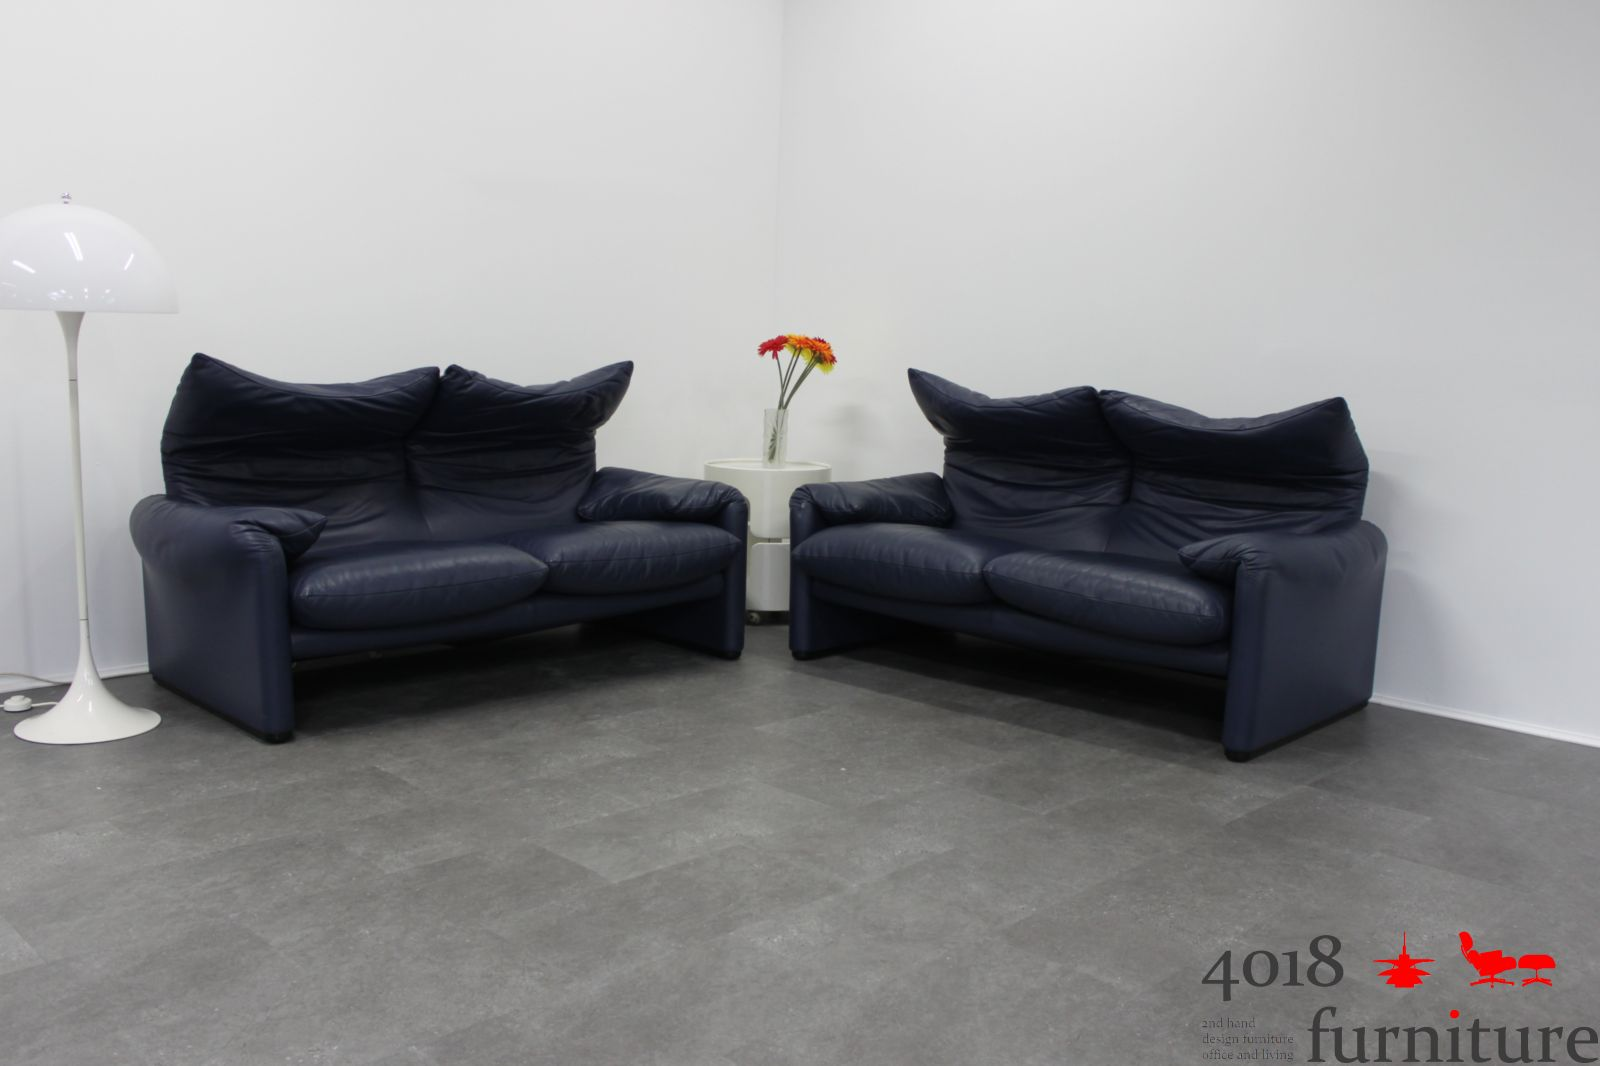 2 x cassina maralunga leder sofa 2 sitzer blau lounge ebay. Black Bedroom Furniture Sets. Home Design Ideas